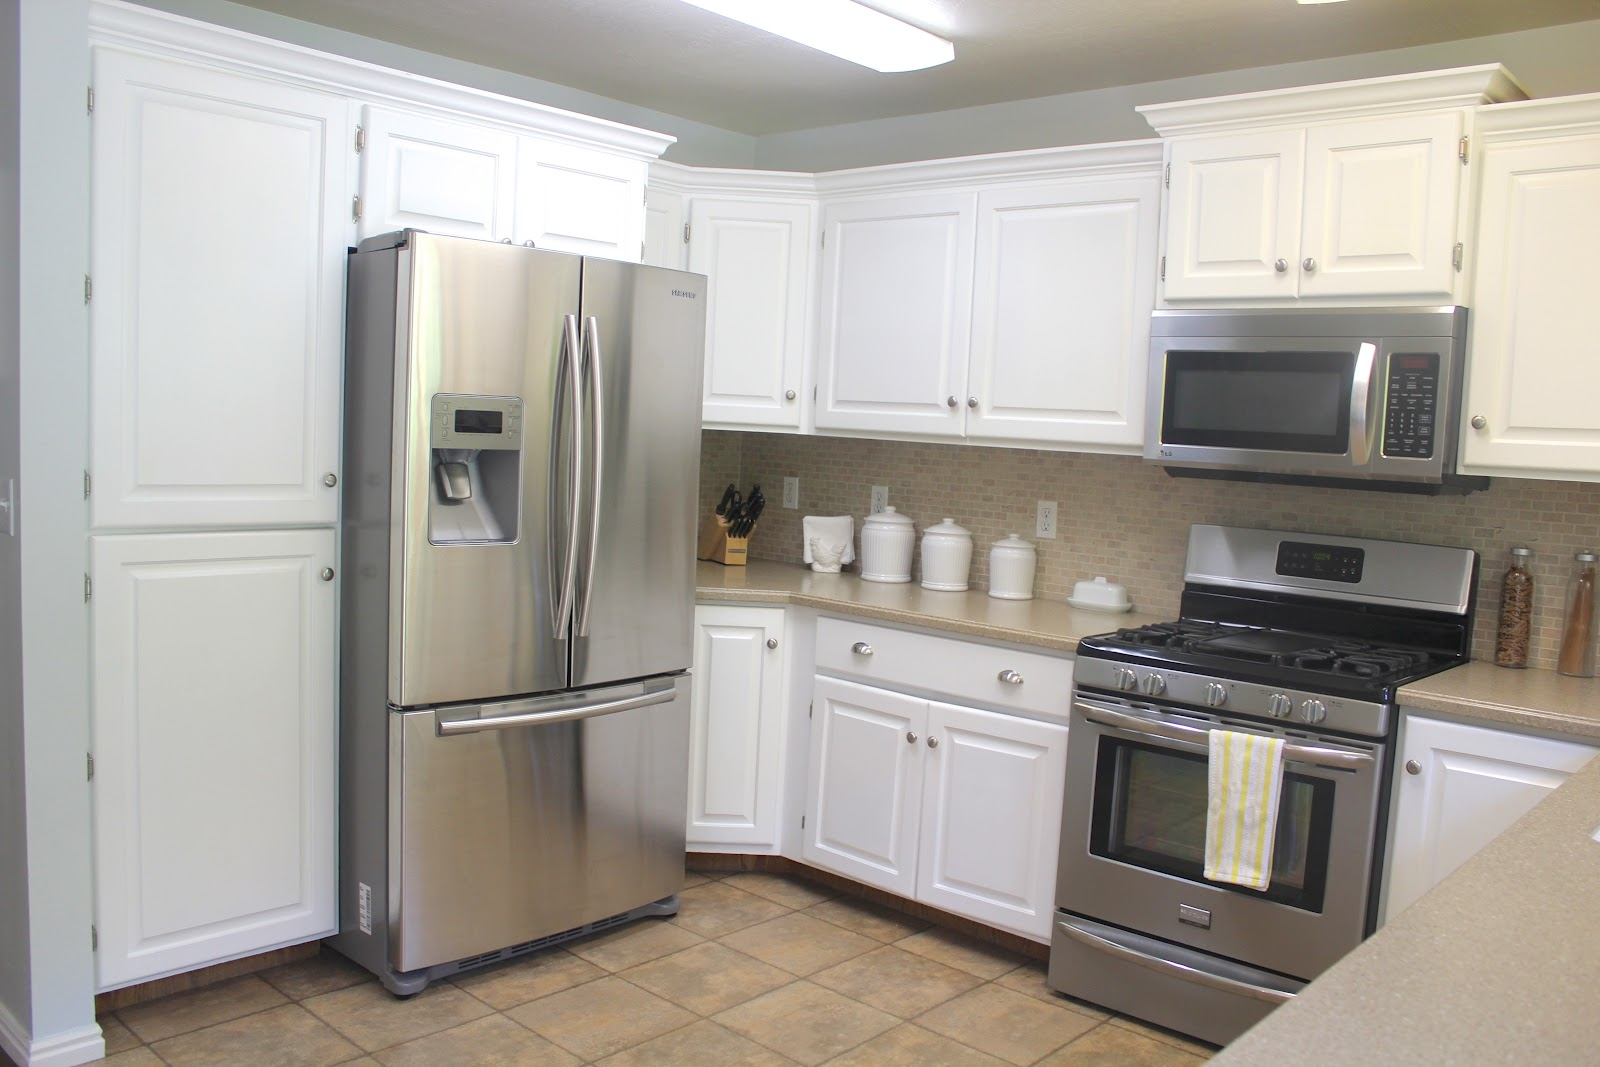 kitchen remodel big results on not so cheap kitchen remodel Kitchen Remodel Big Results on a Not So Big Budget